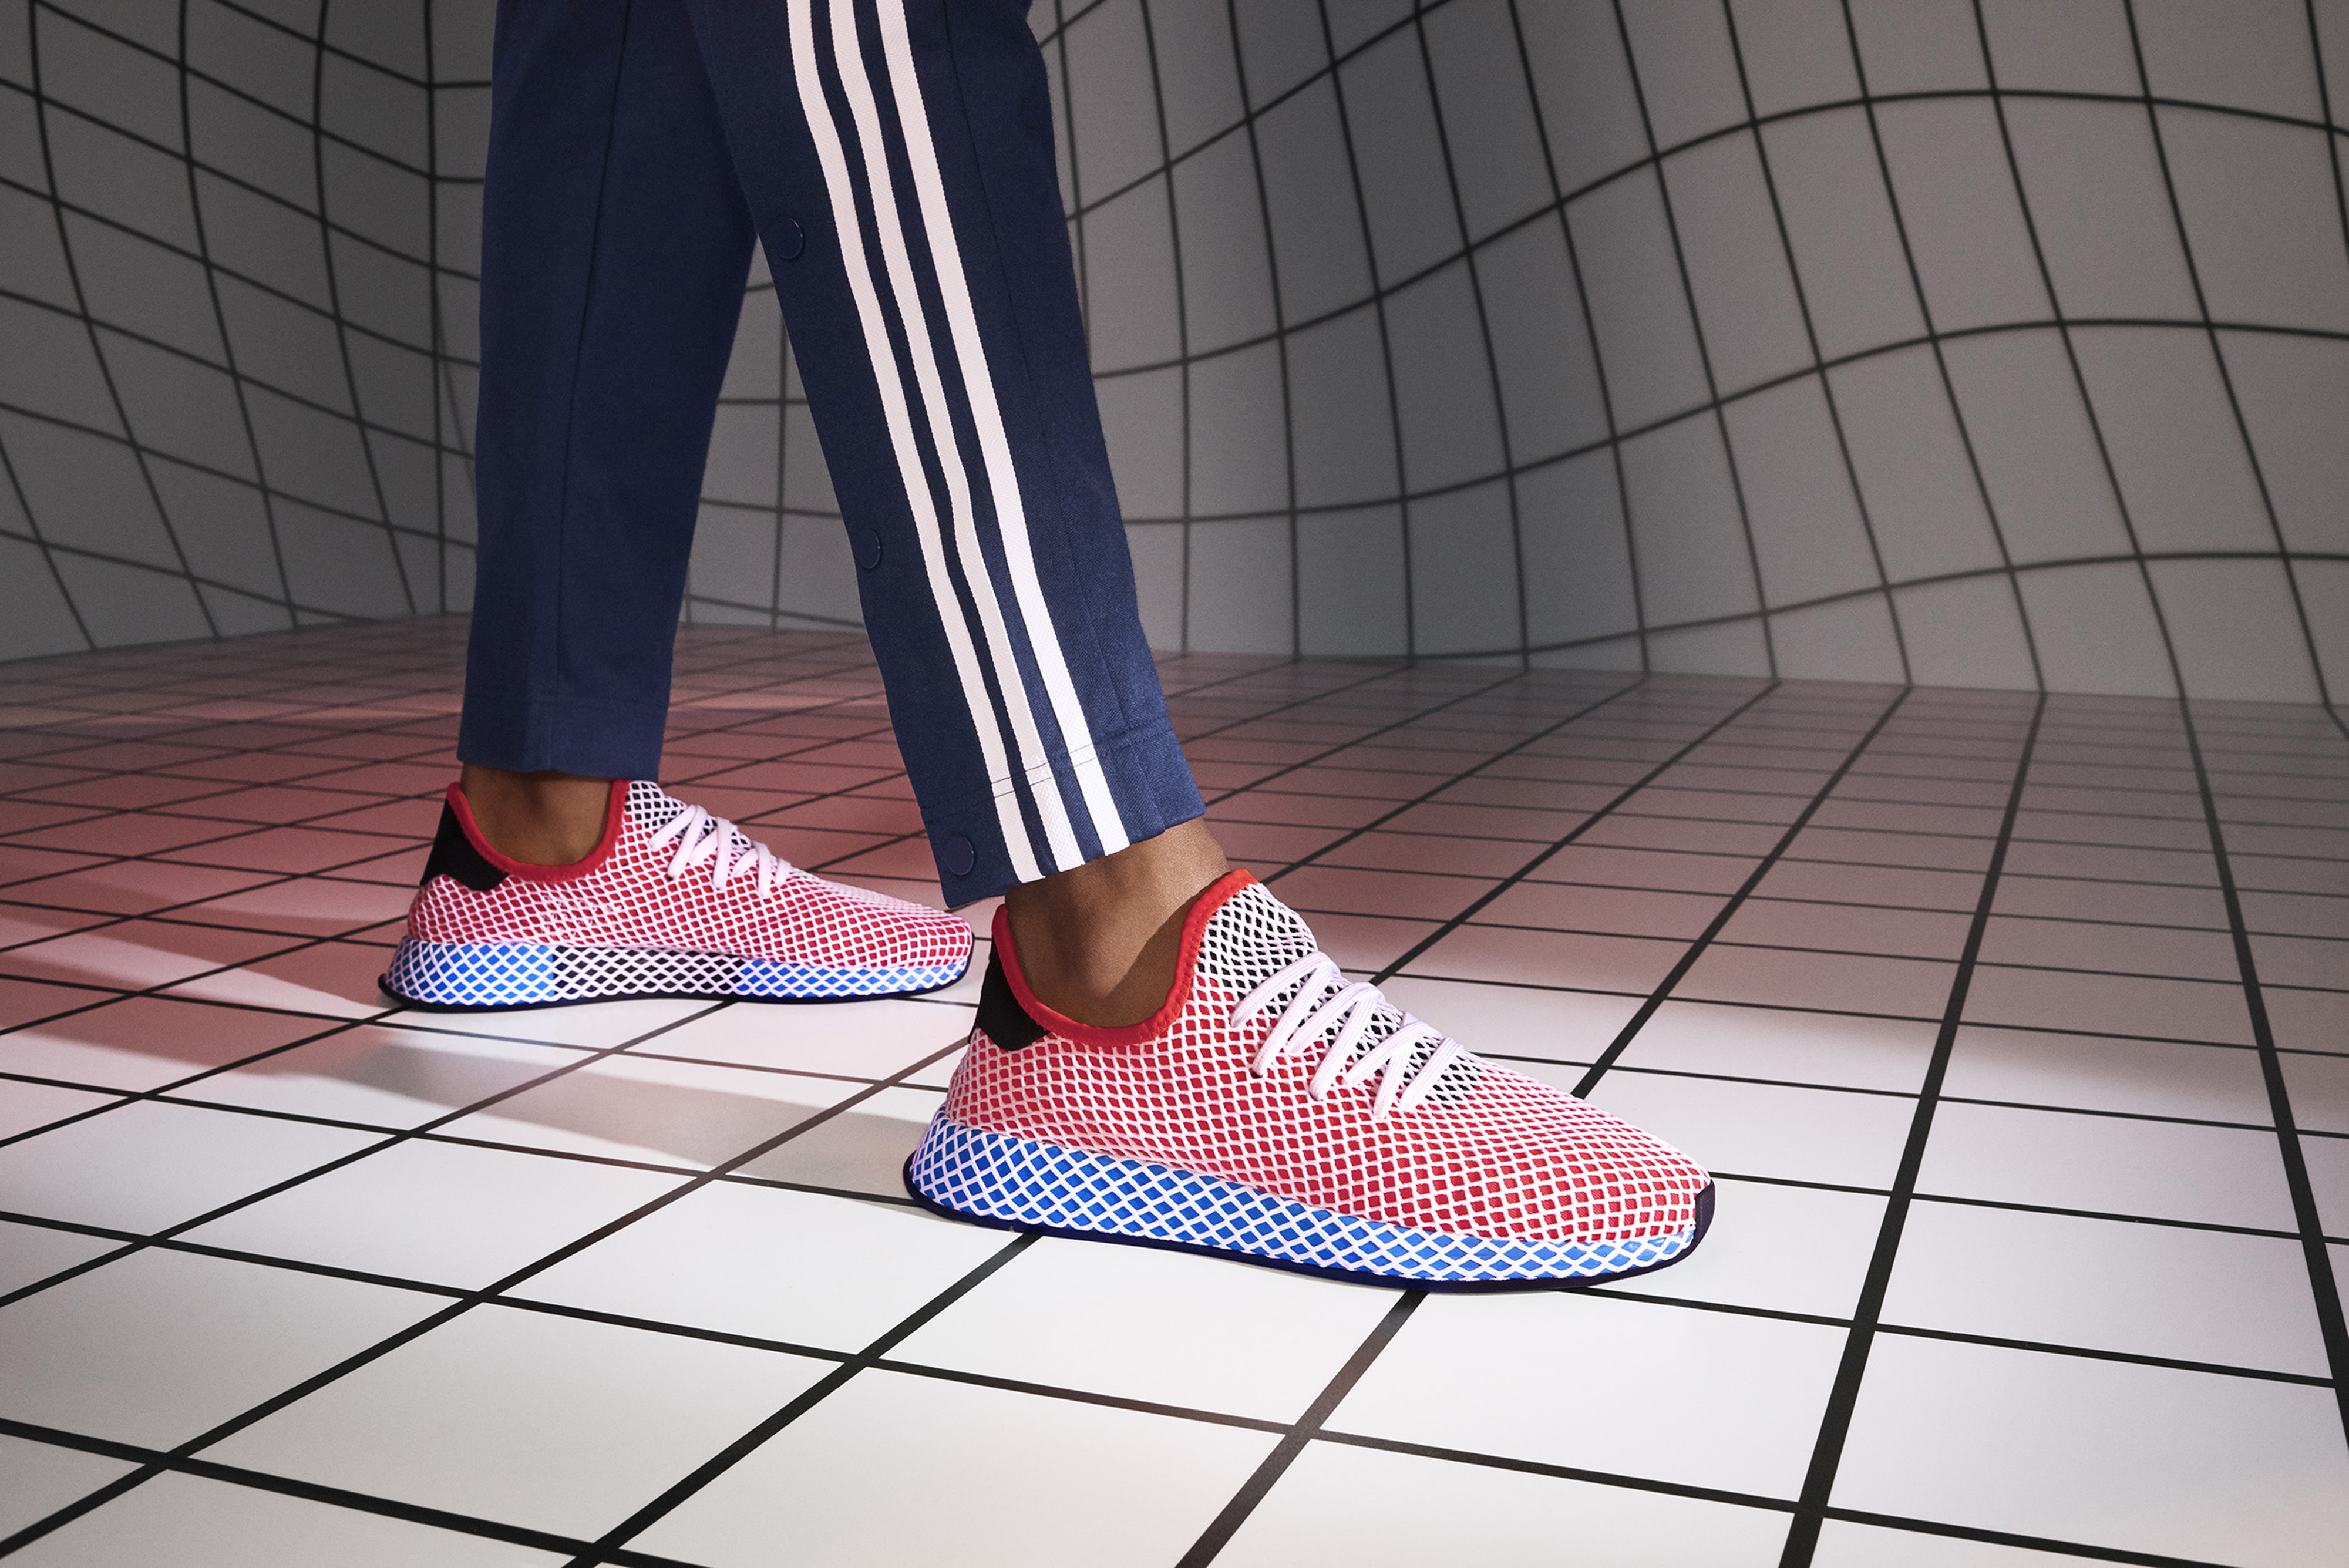 premium selection aa7d7 e5b19 The sneaker was initially featured in adidas running silhouettes in the 80s  and once a key feature on the New York runner and Marathon Training shoe.